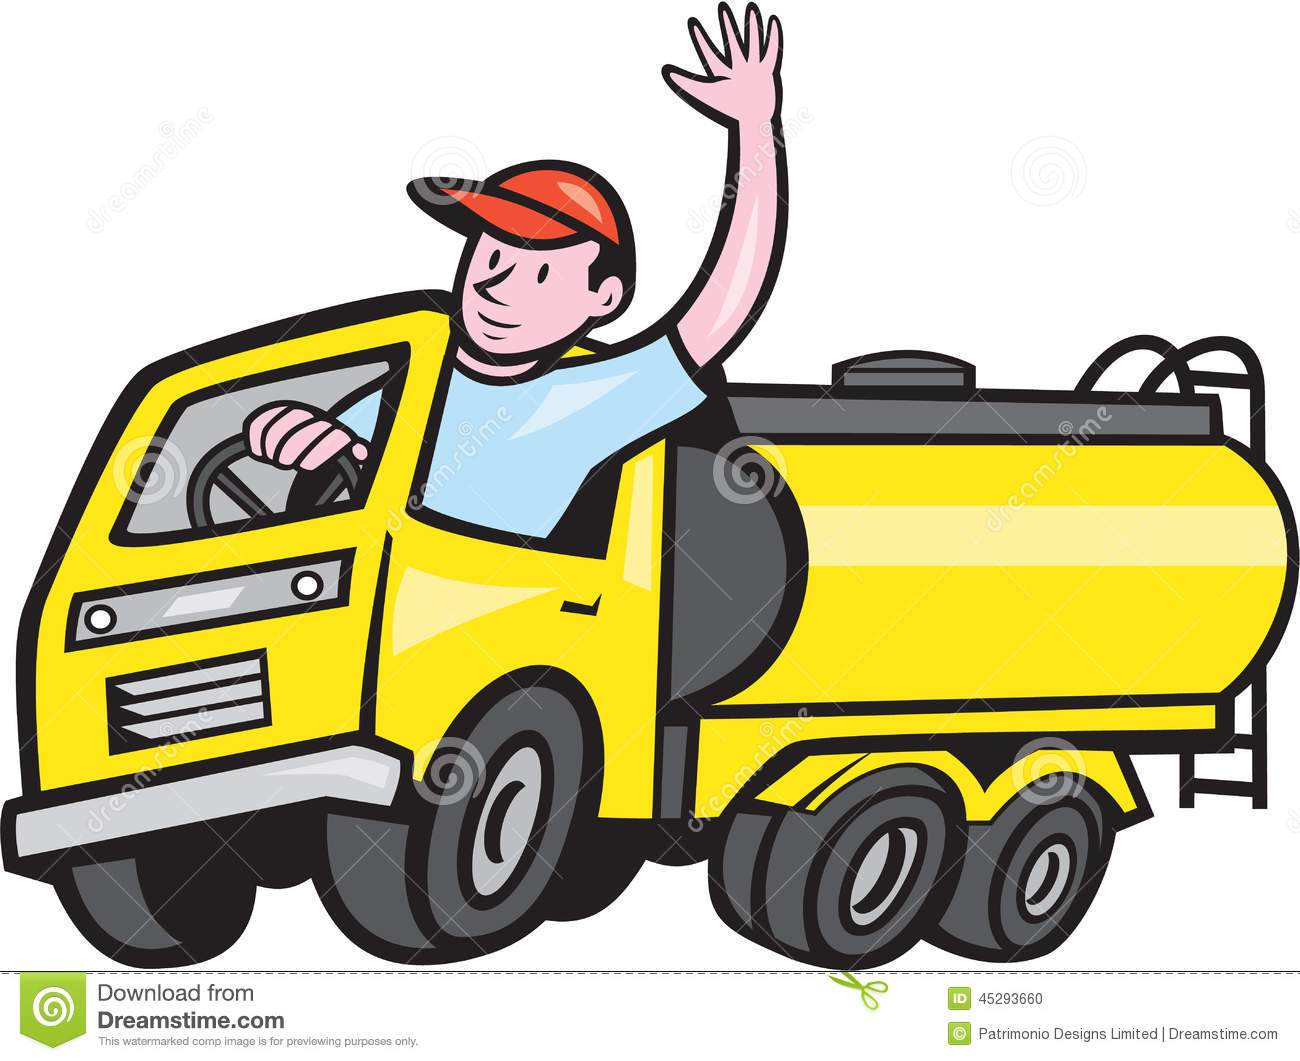 Truck free download best. Driving clipart delivery driver